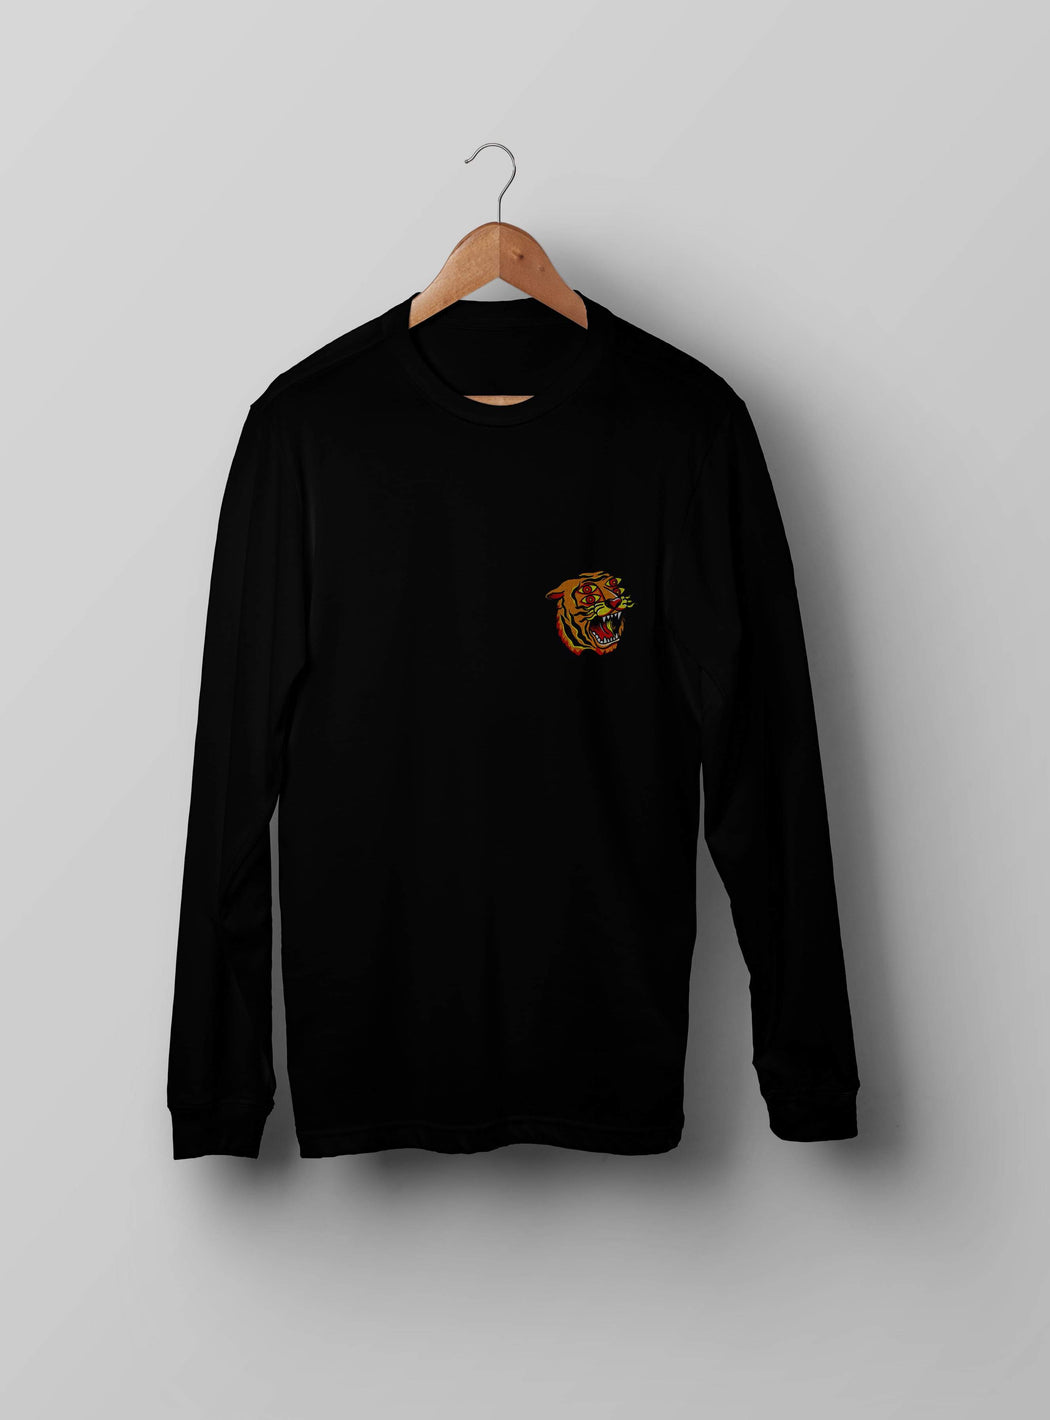 4 Eyes Tiger Black Sweatshirt - Kustom: Tees Factory